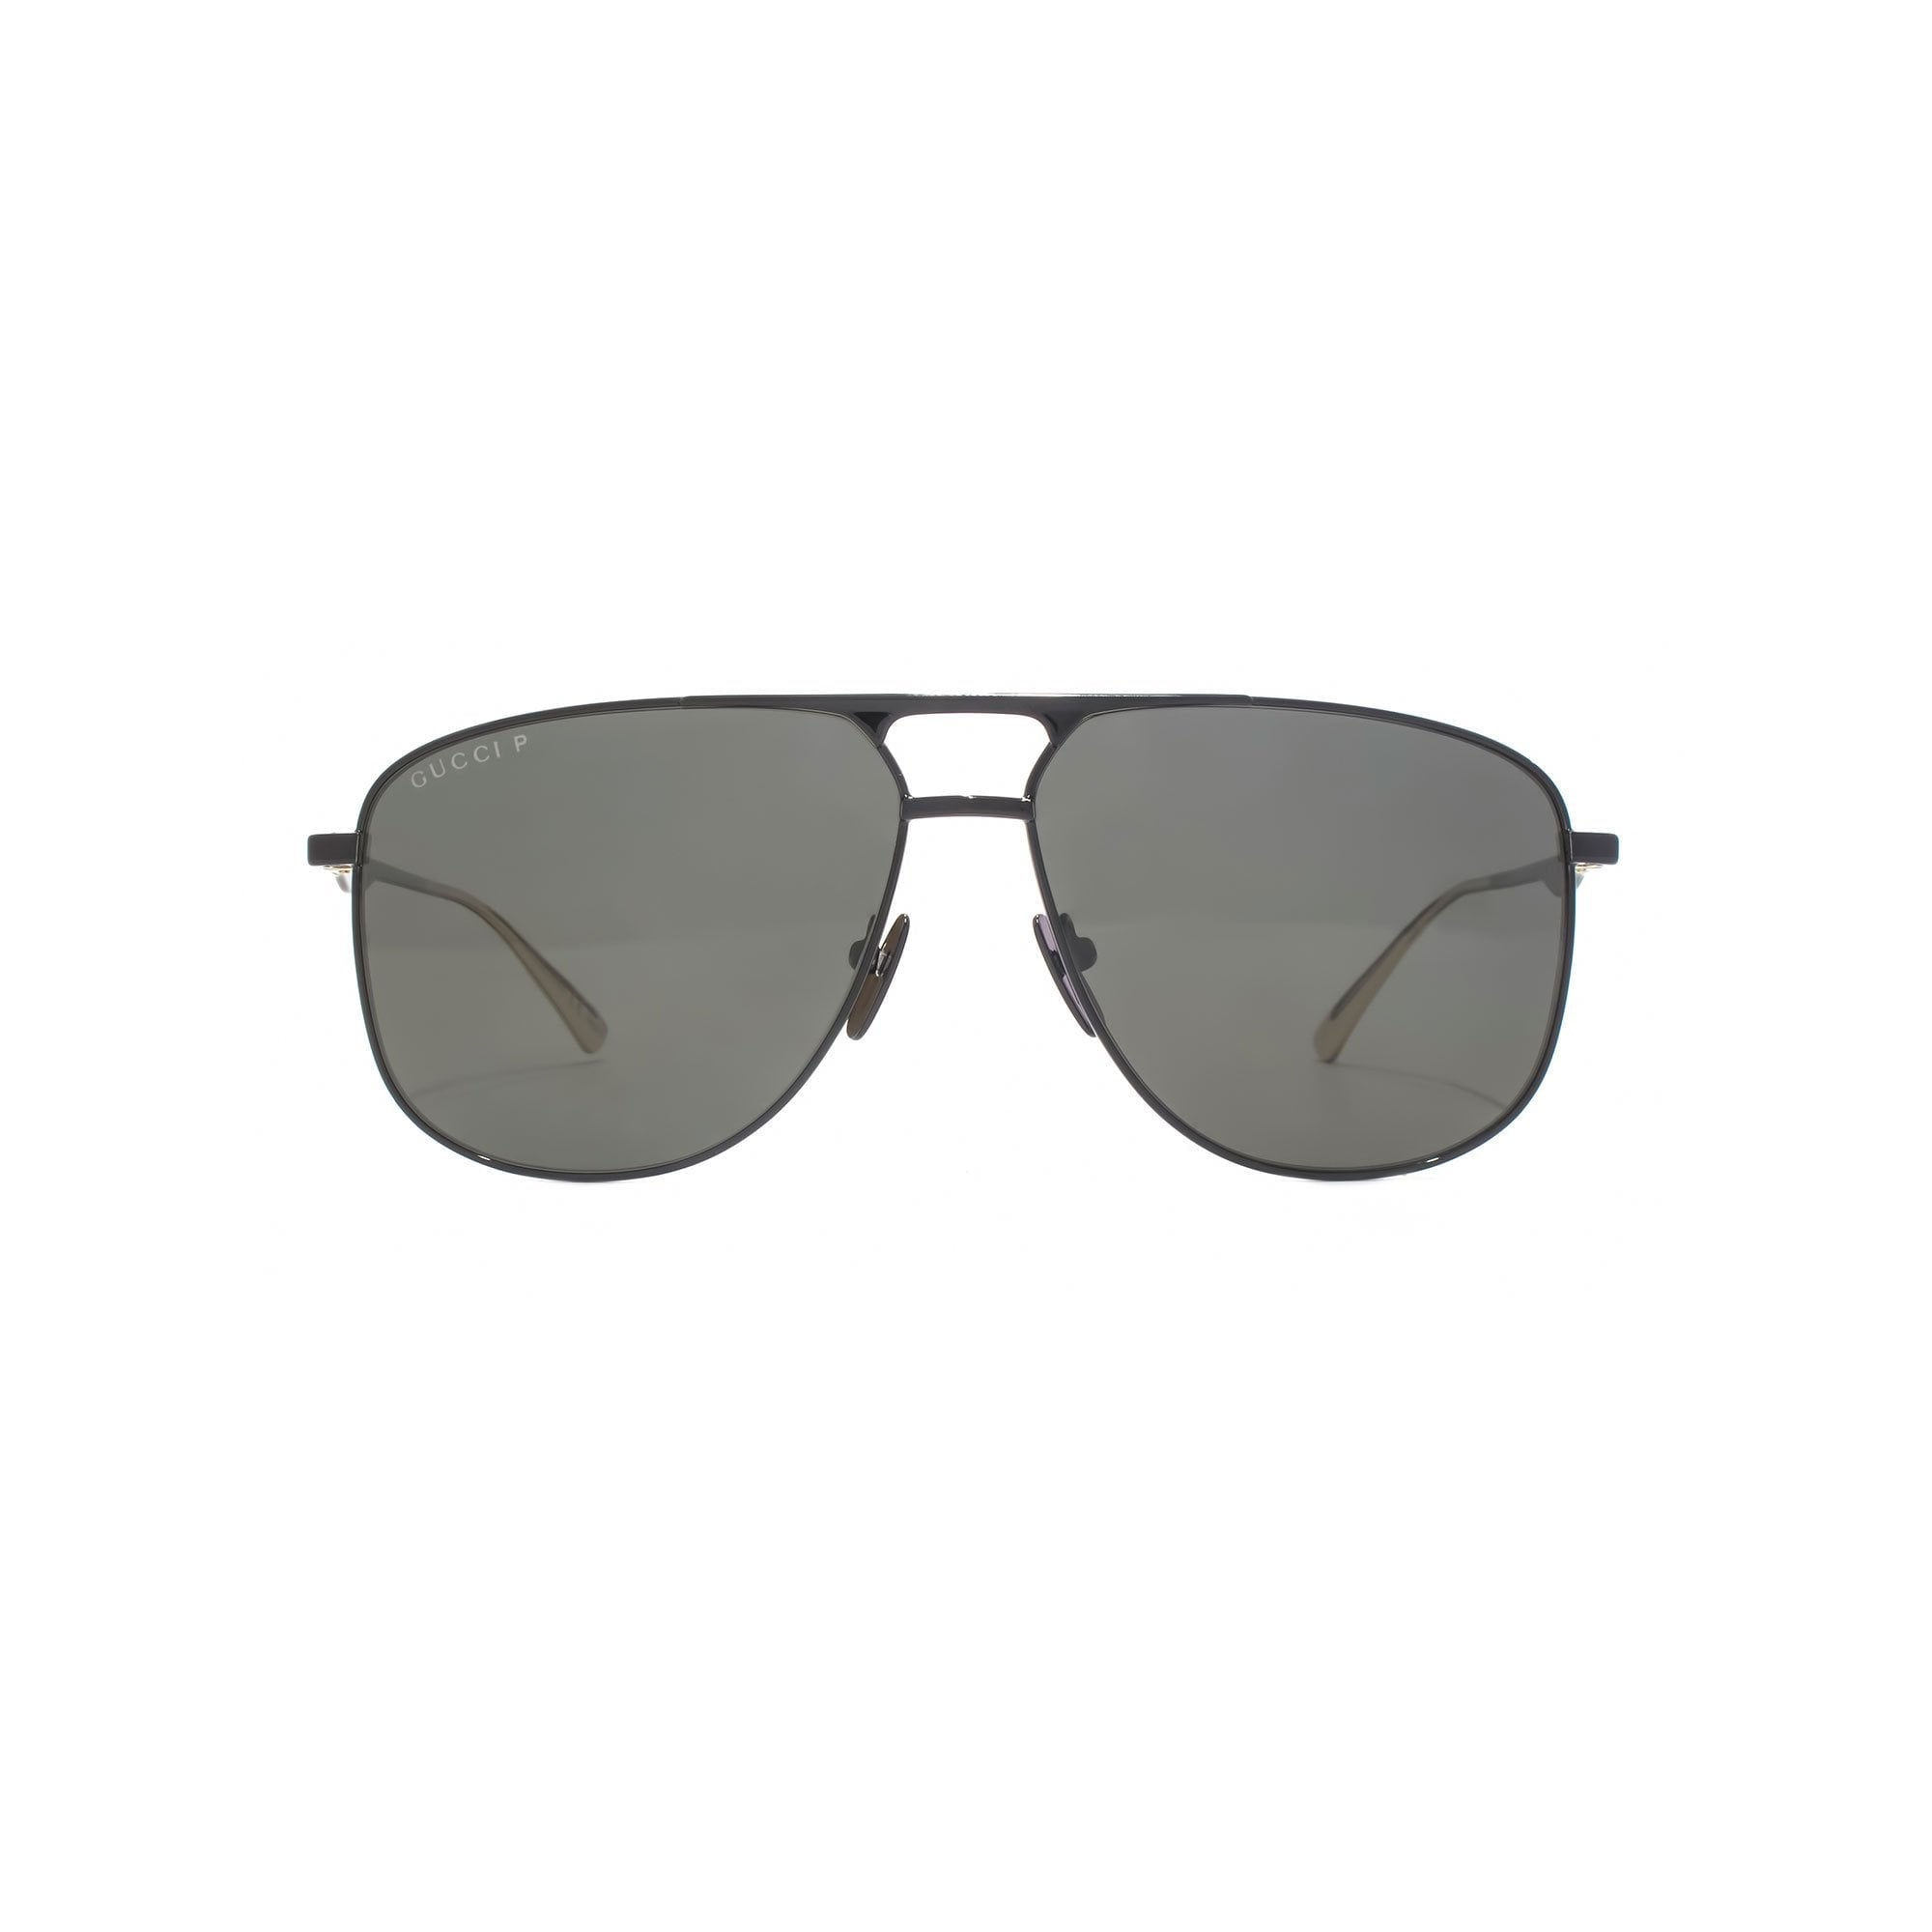 Gucci Pilot Sunglasses at KIE Men's Shoppe